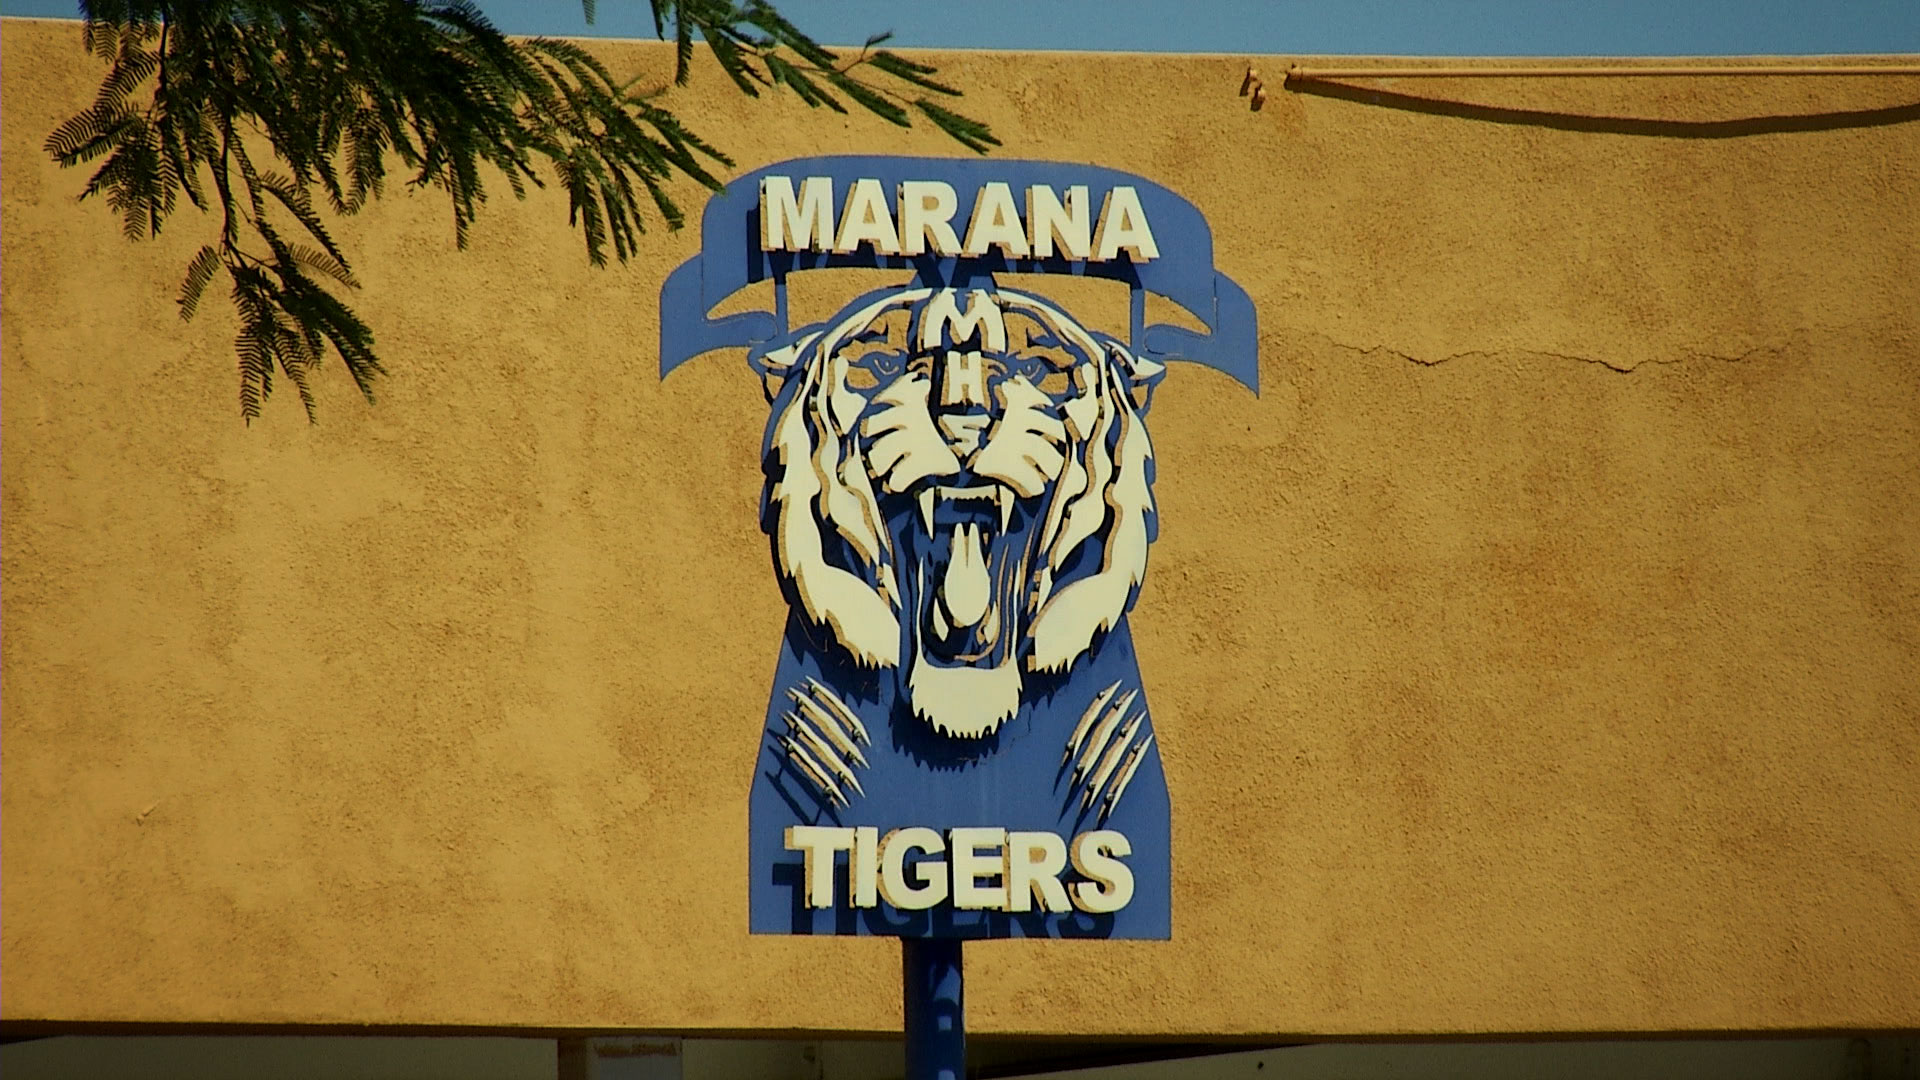 A logo of Marana High School's tiger mascot decorates a wall in a courtyard on campus.